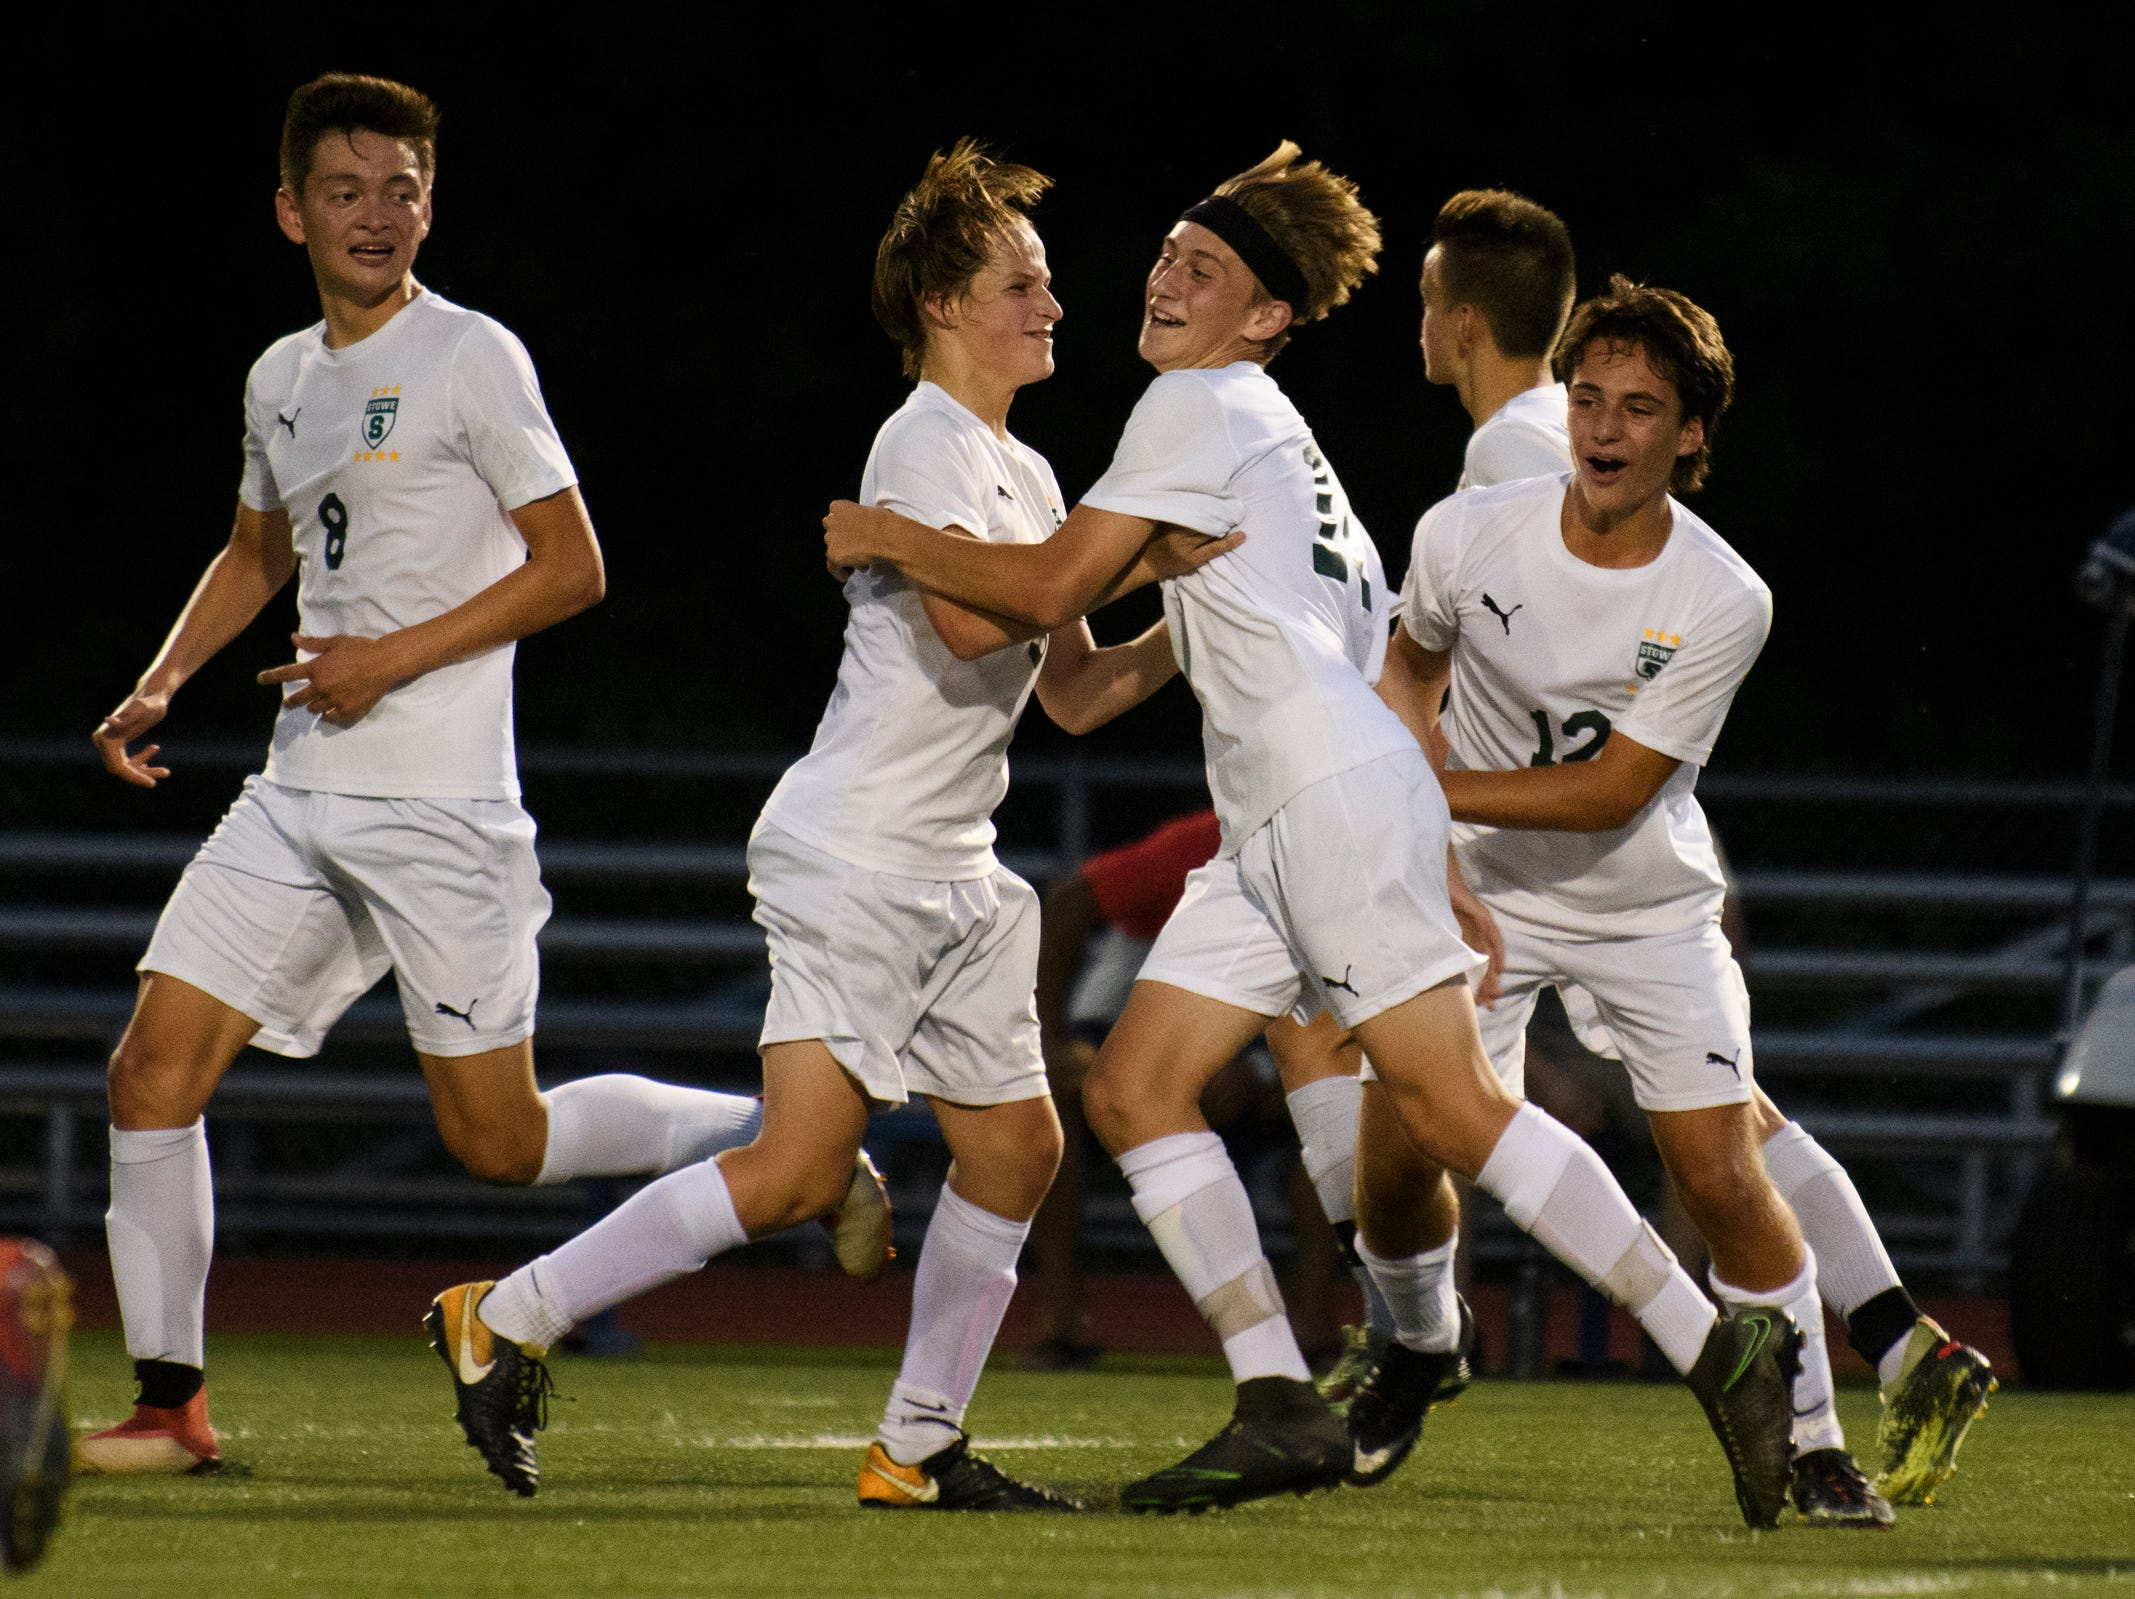 Stowe celebrates a goal during the boys soccer game between Stowe and Burlington at Buck Hard field on Wednesday night September 5, 2018 in Burlington.